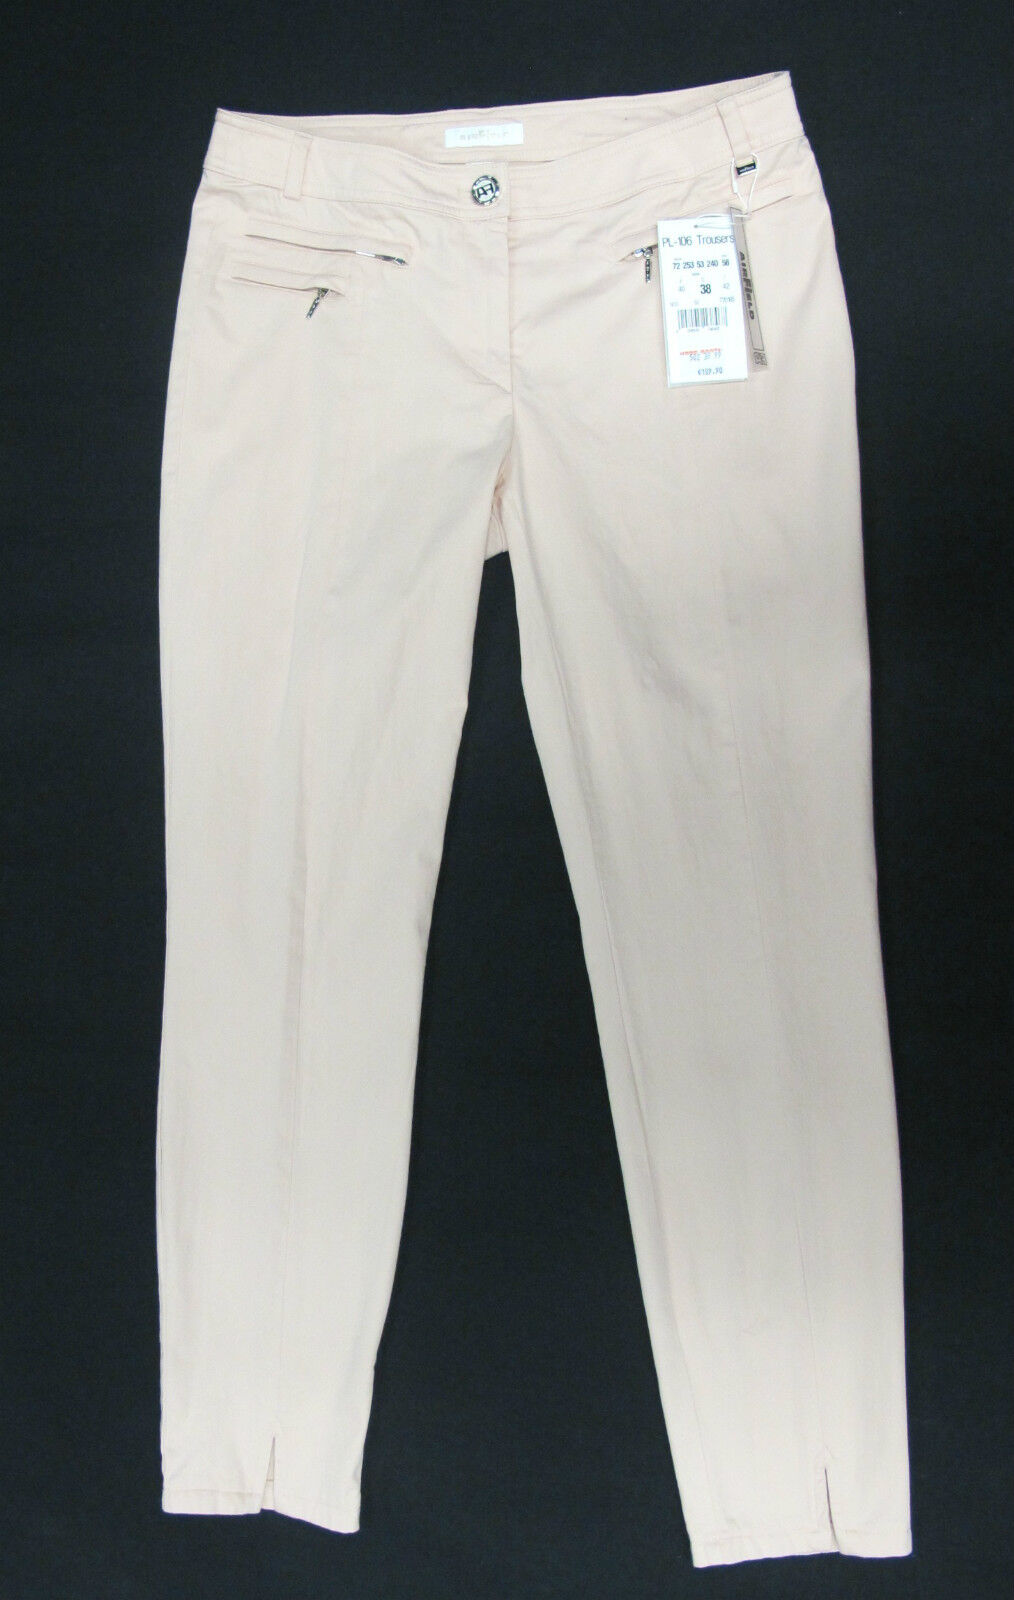 Airfield pl-106 sale trousers NUDE Tg. 36,46, UVP